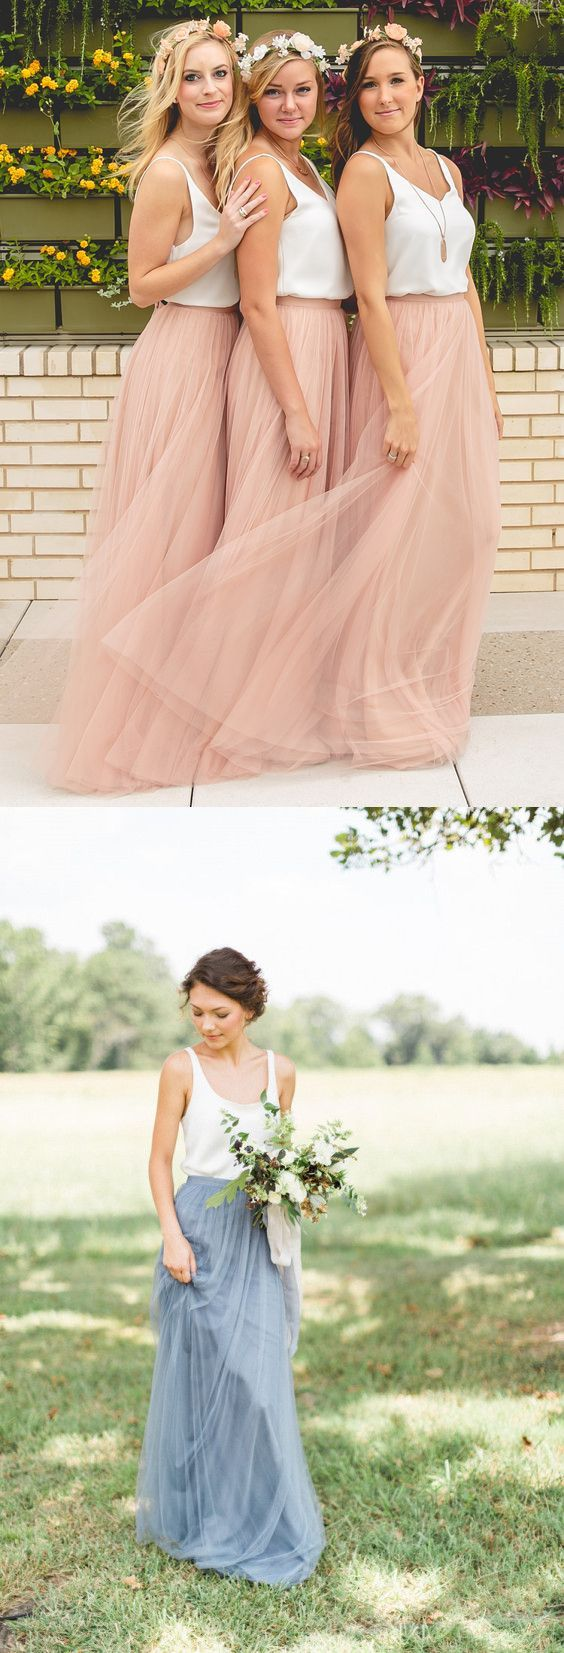 Best 25 blush pink wedding dress ideas on pinterest baby blush pink bridesmaid dresses long bridesmaid dresses 2016 fall wedding dresseswedding tutu ombrellifo Images